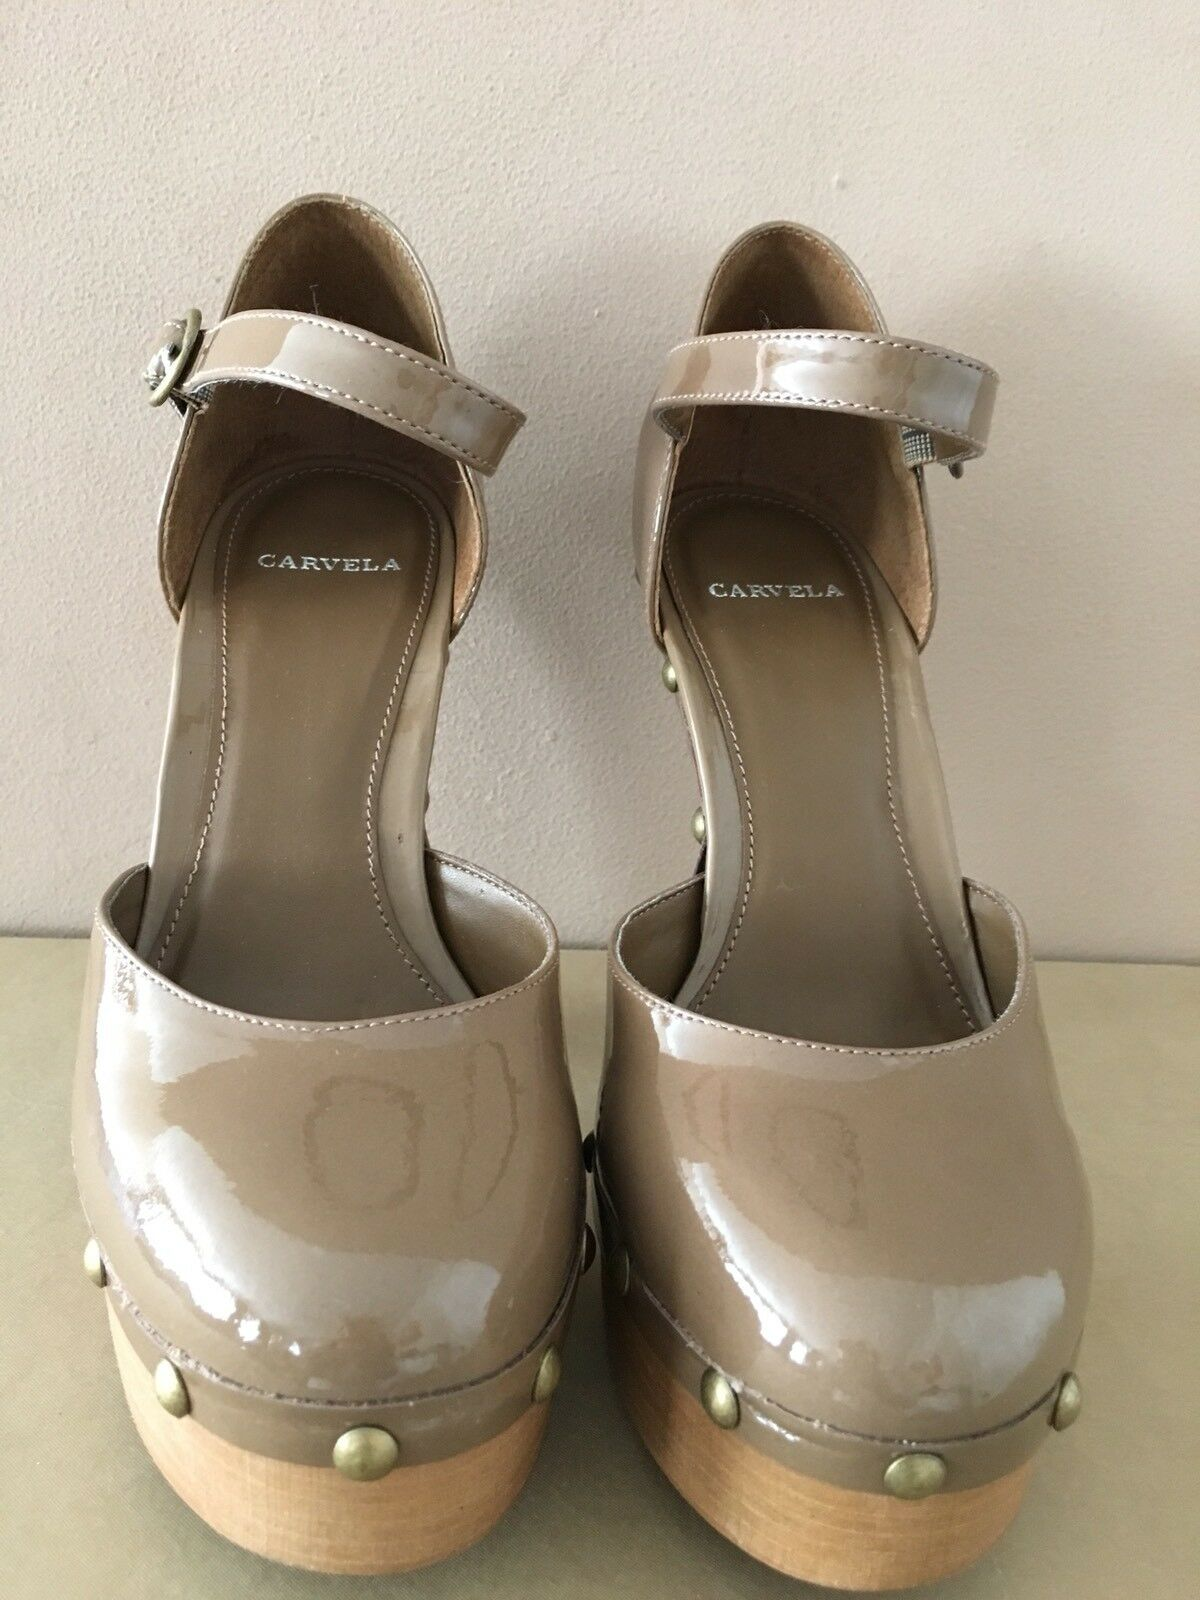 Carvela Ladies Taupe Patent Court shoes Size39 BNIB